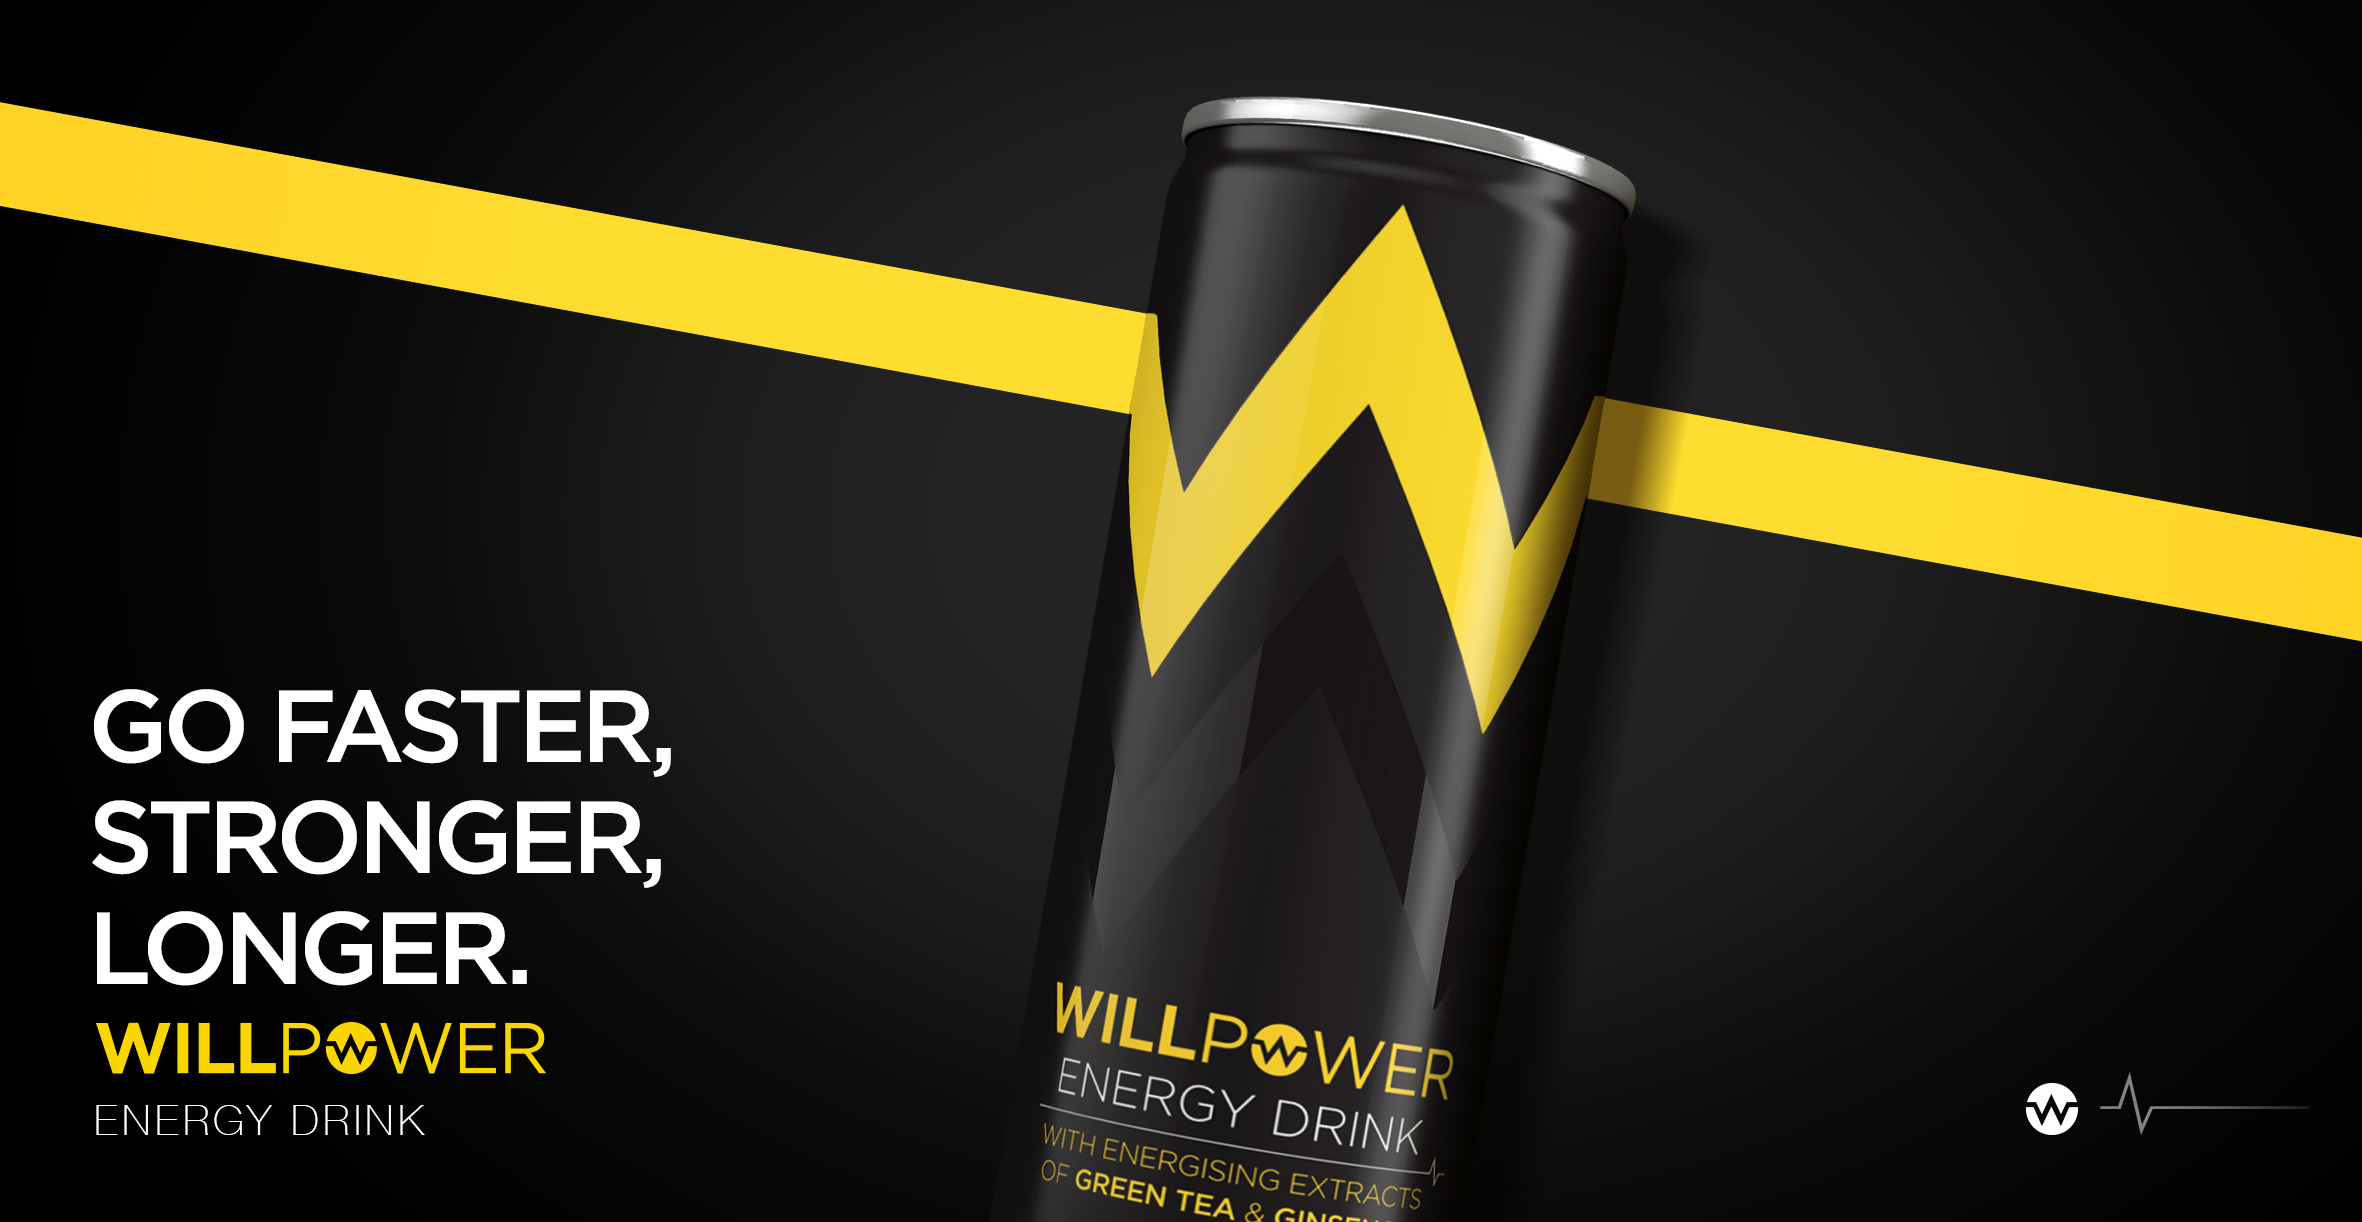 Branding and Packaging Design for Energy Drink Brand Willpower